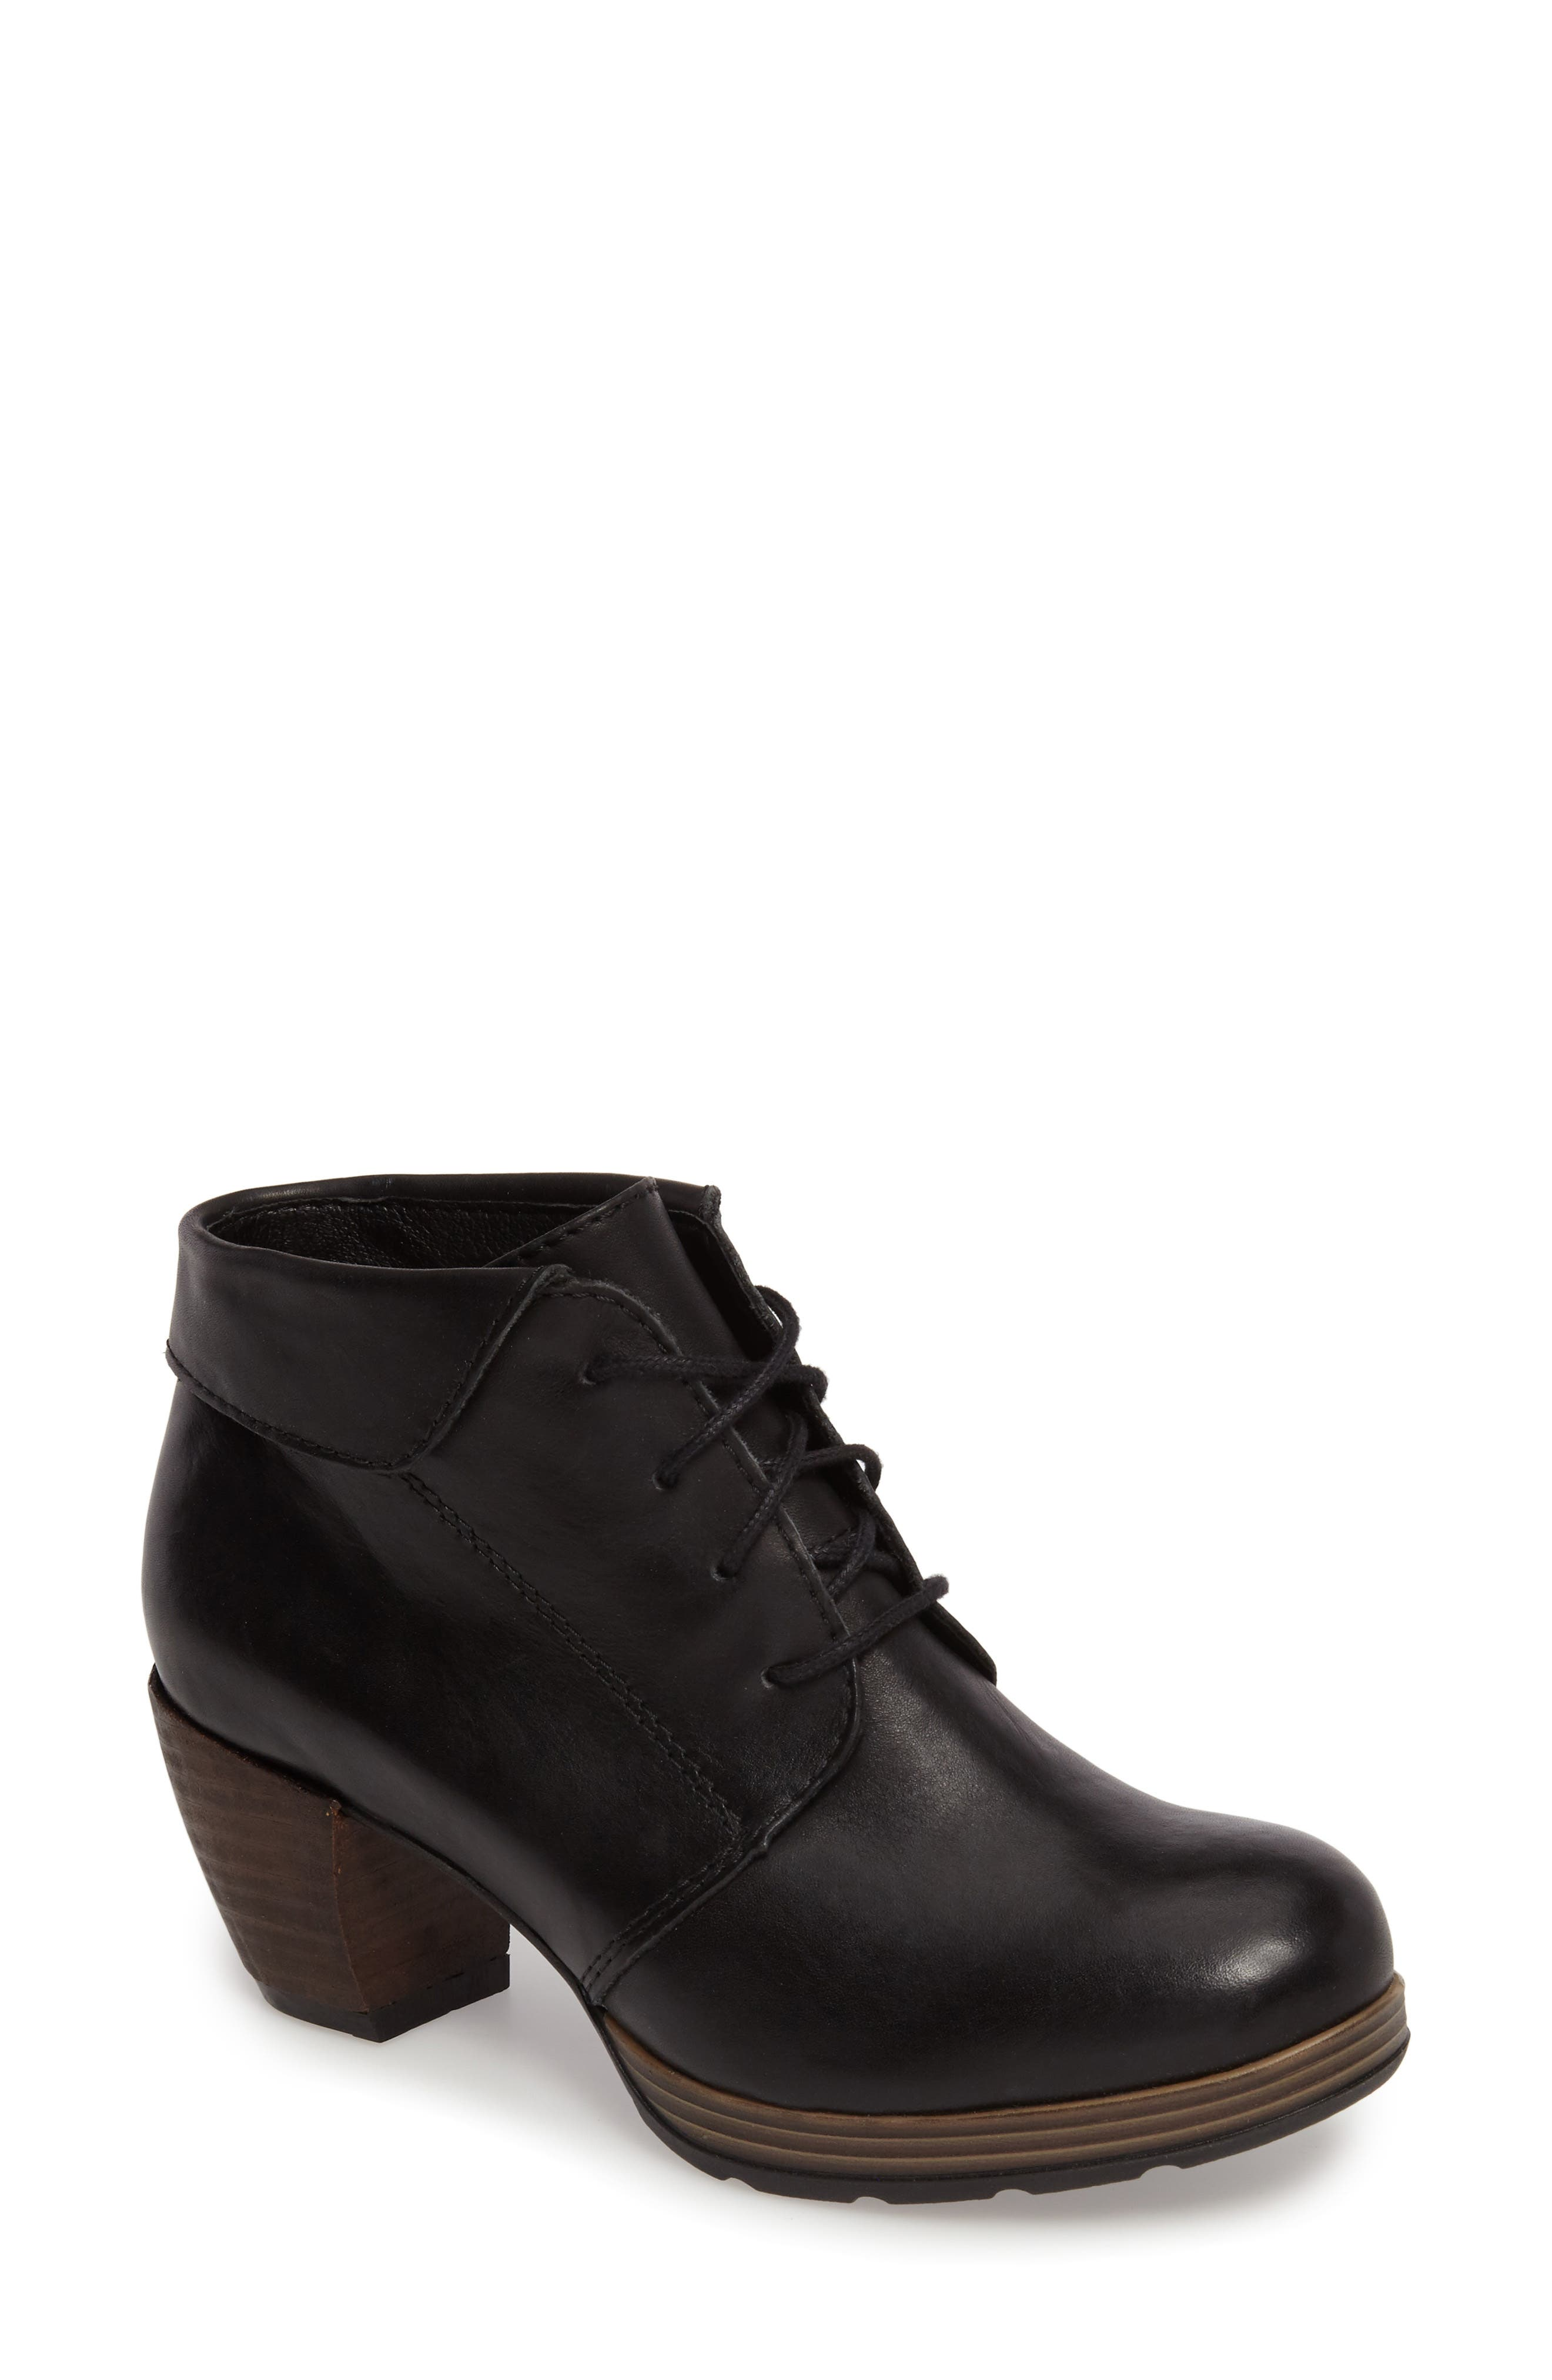 Wolky Jacquerie Lace-Up Bootie - Black